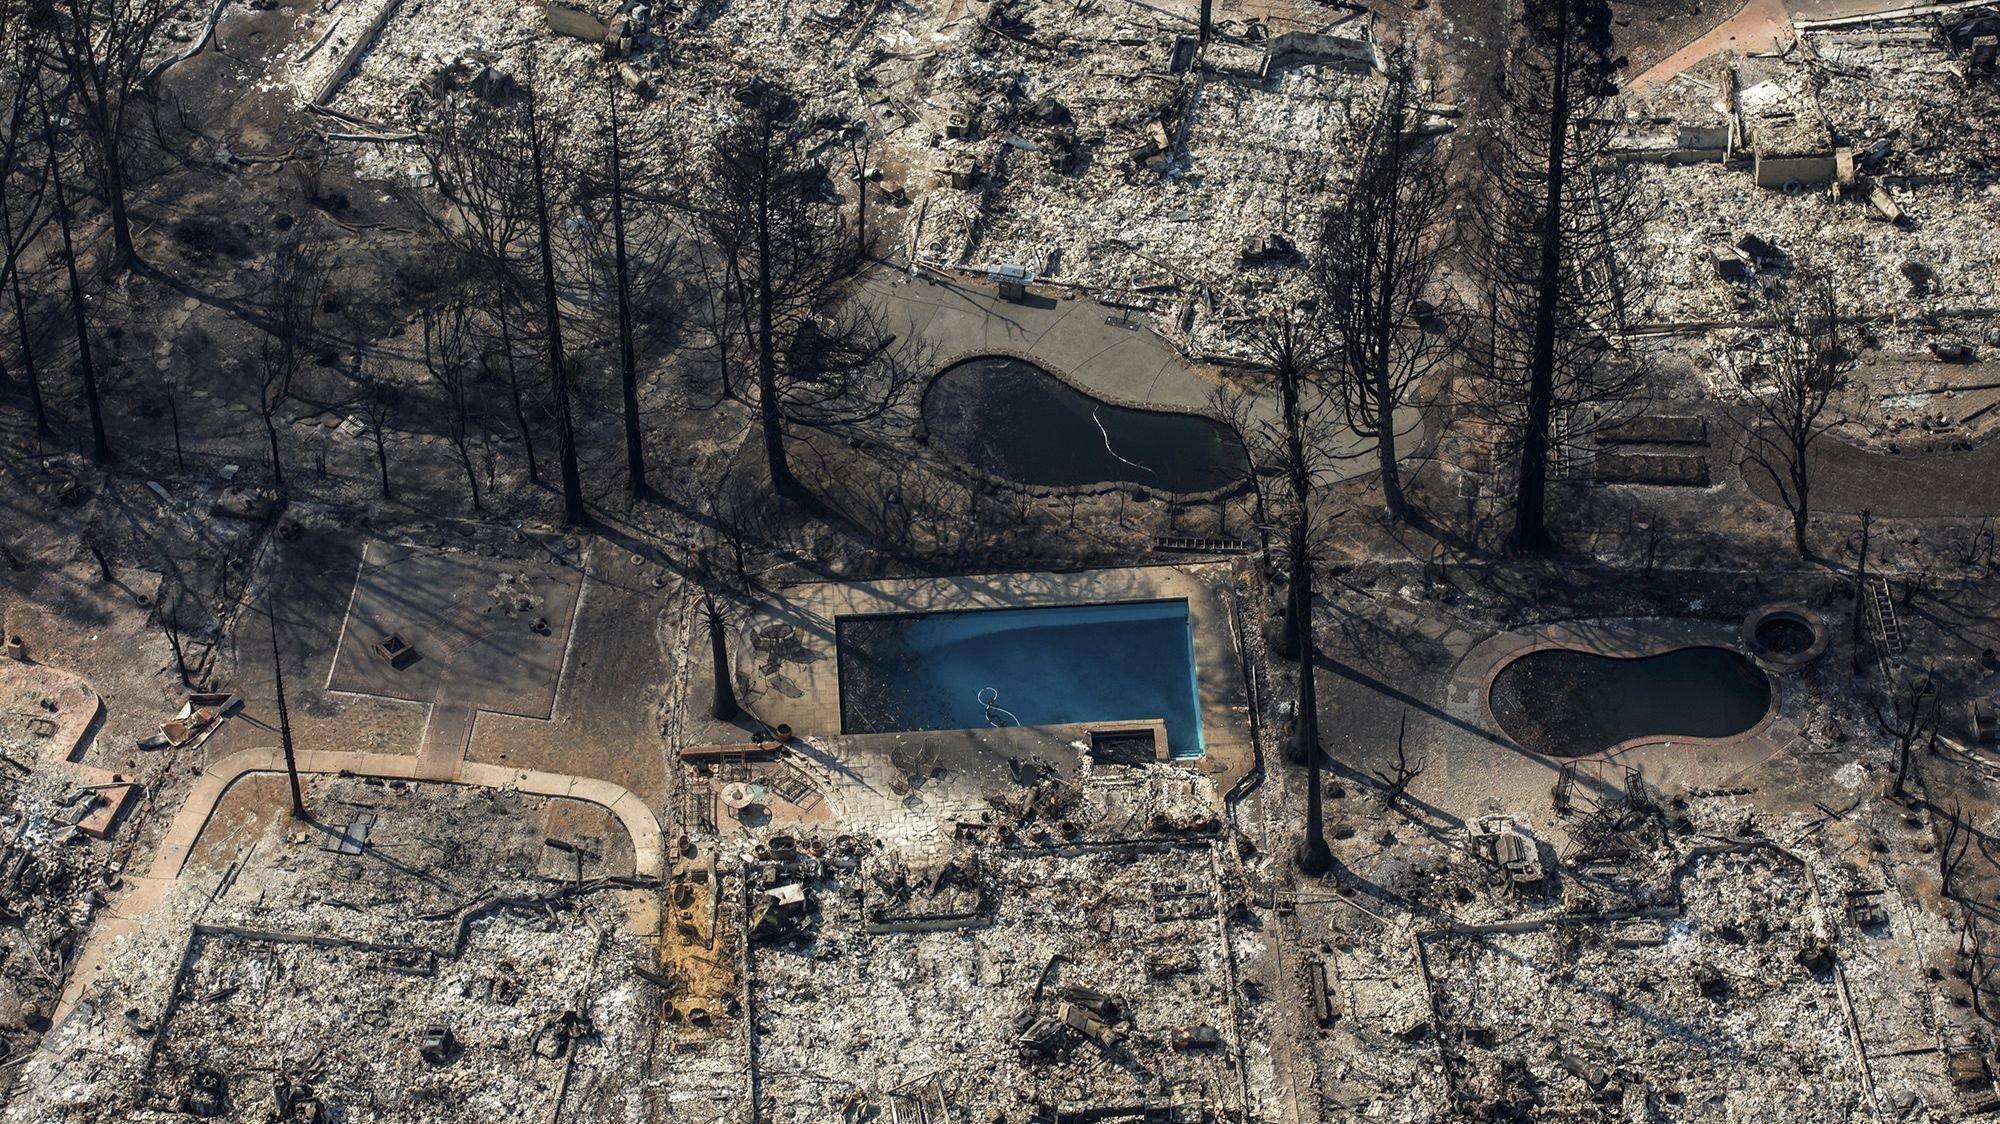 The California Fires 2017